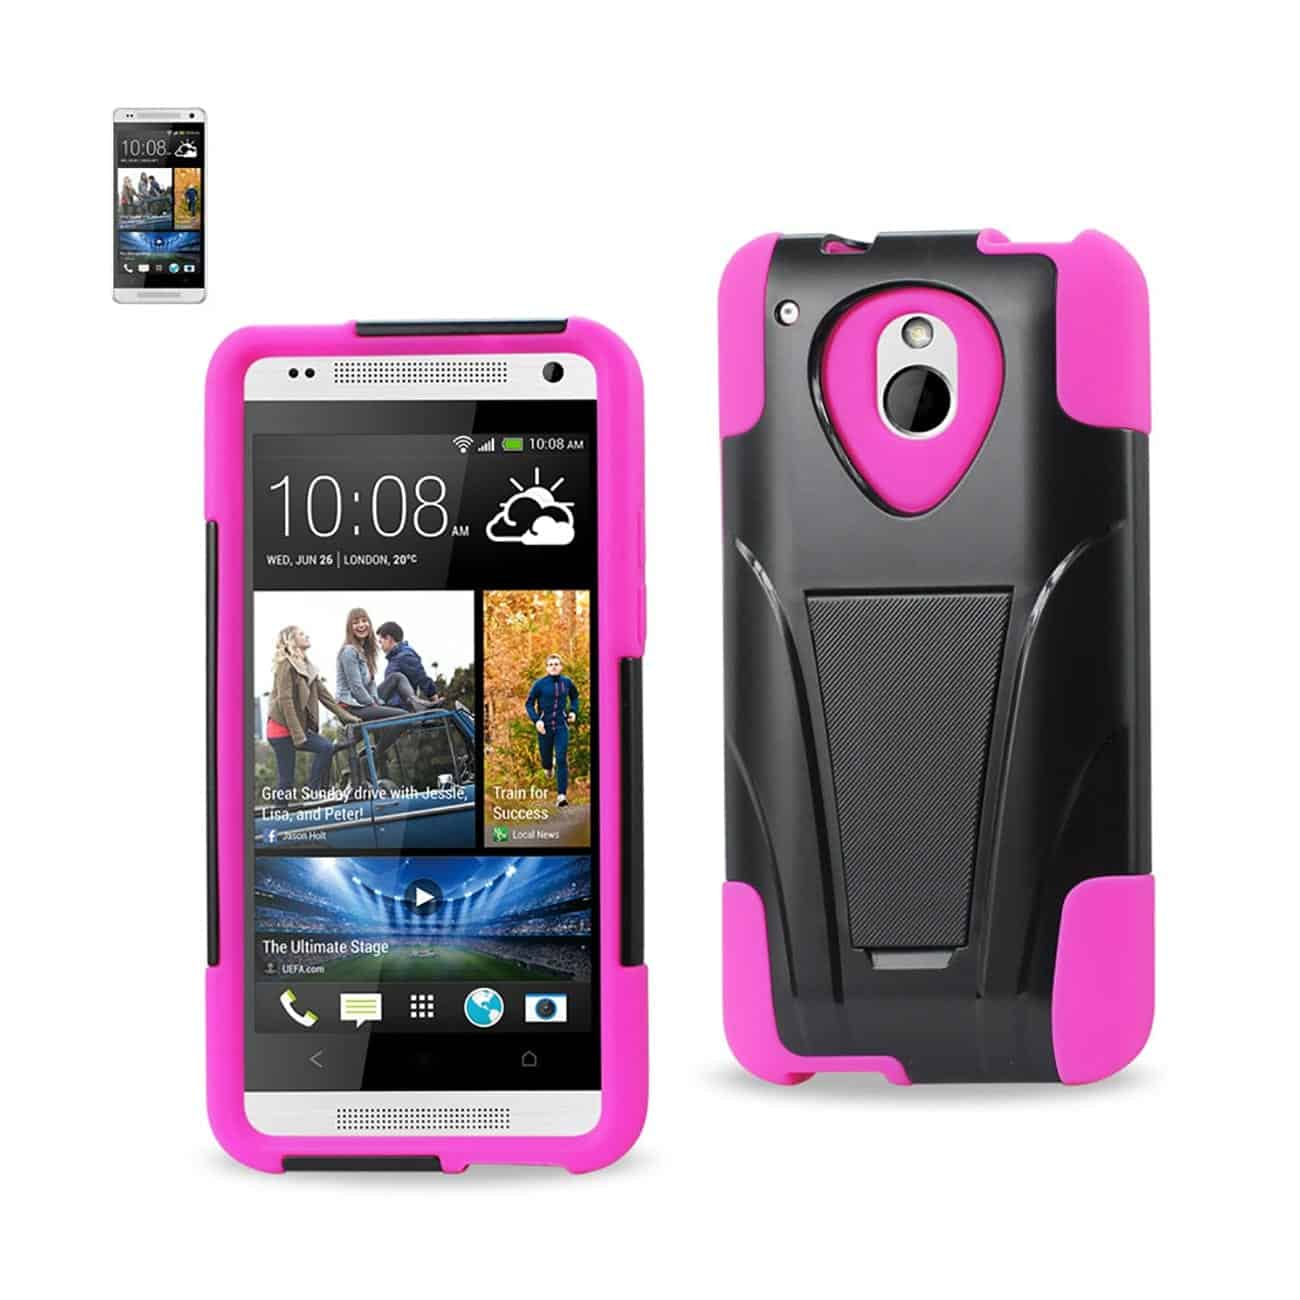 HTC ONE MINI M4 HYBRID HEAVY DUTY CASE WITH KICKSTAND IN HOT PINK BLACK